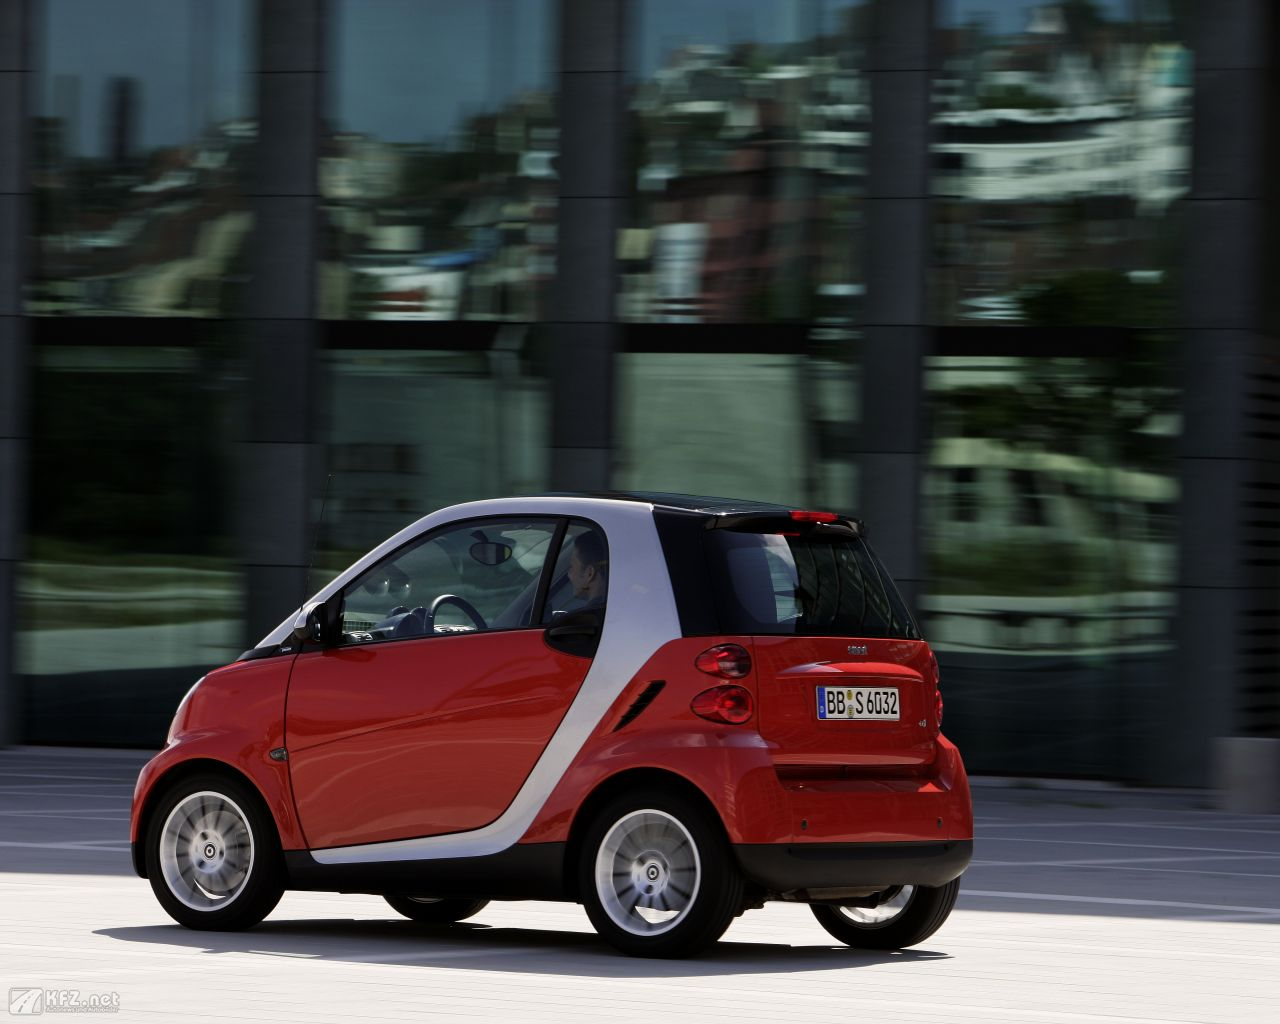 smart-fortwo-1280x1024-4